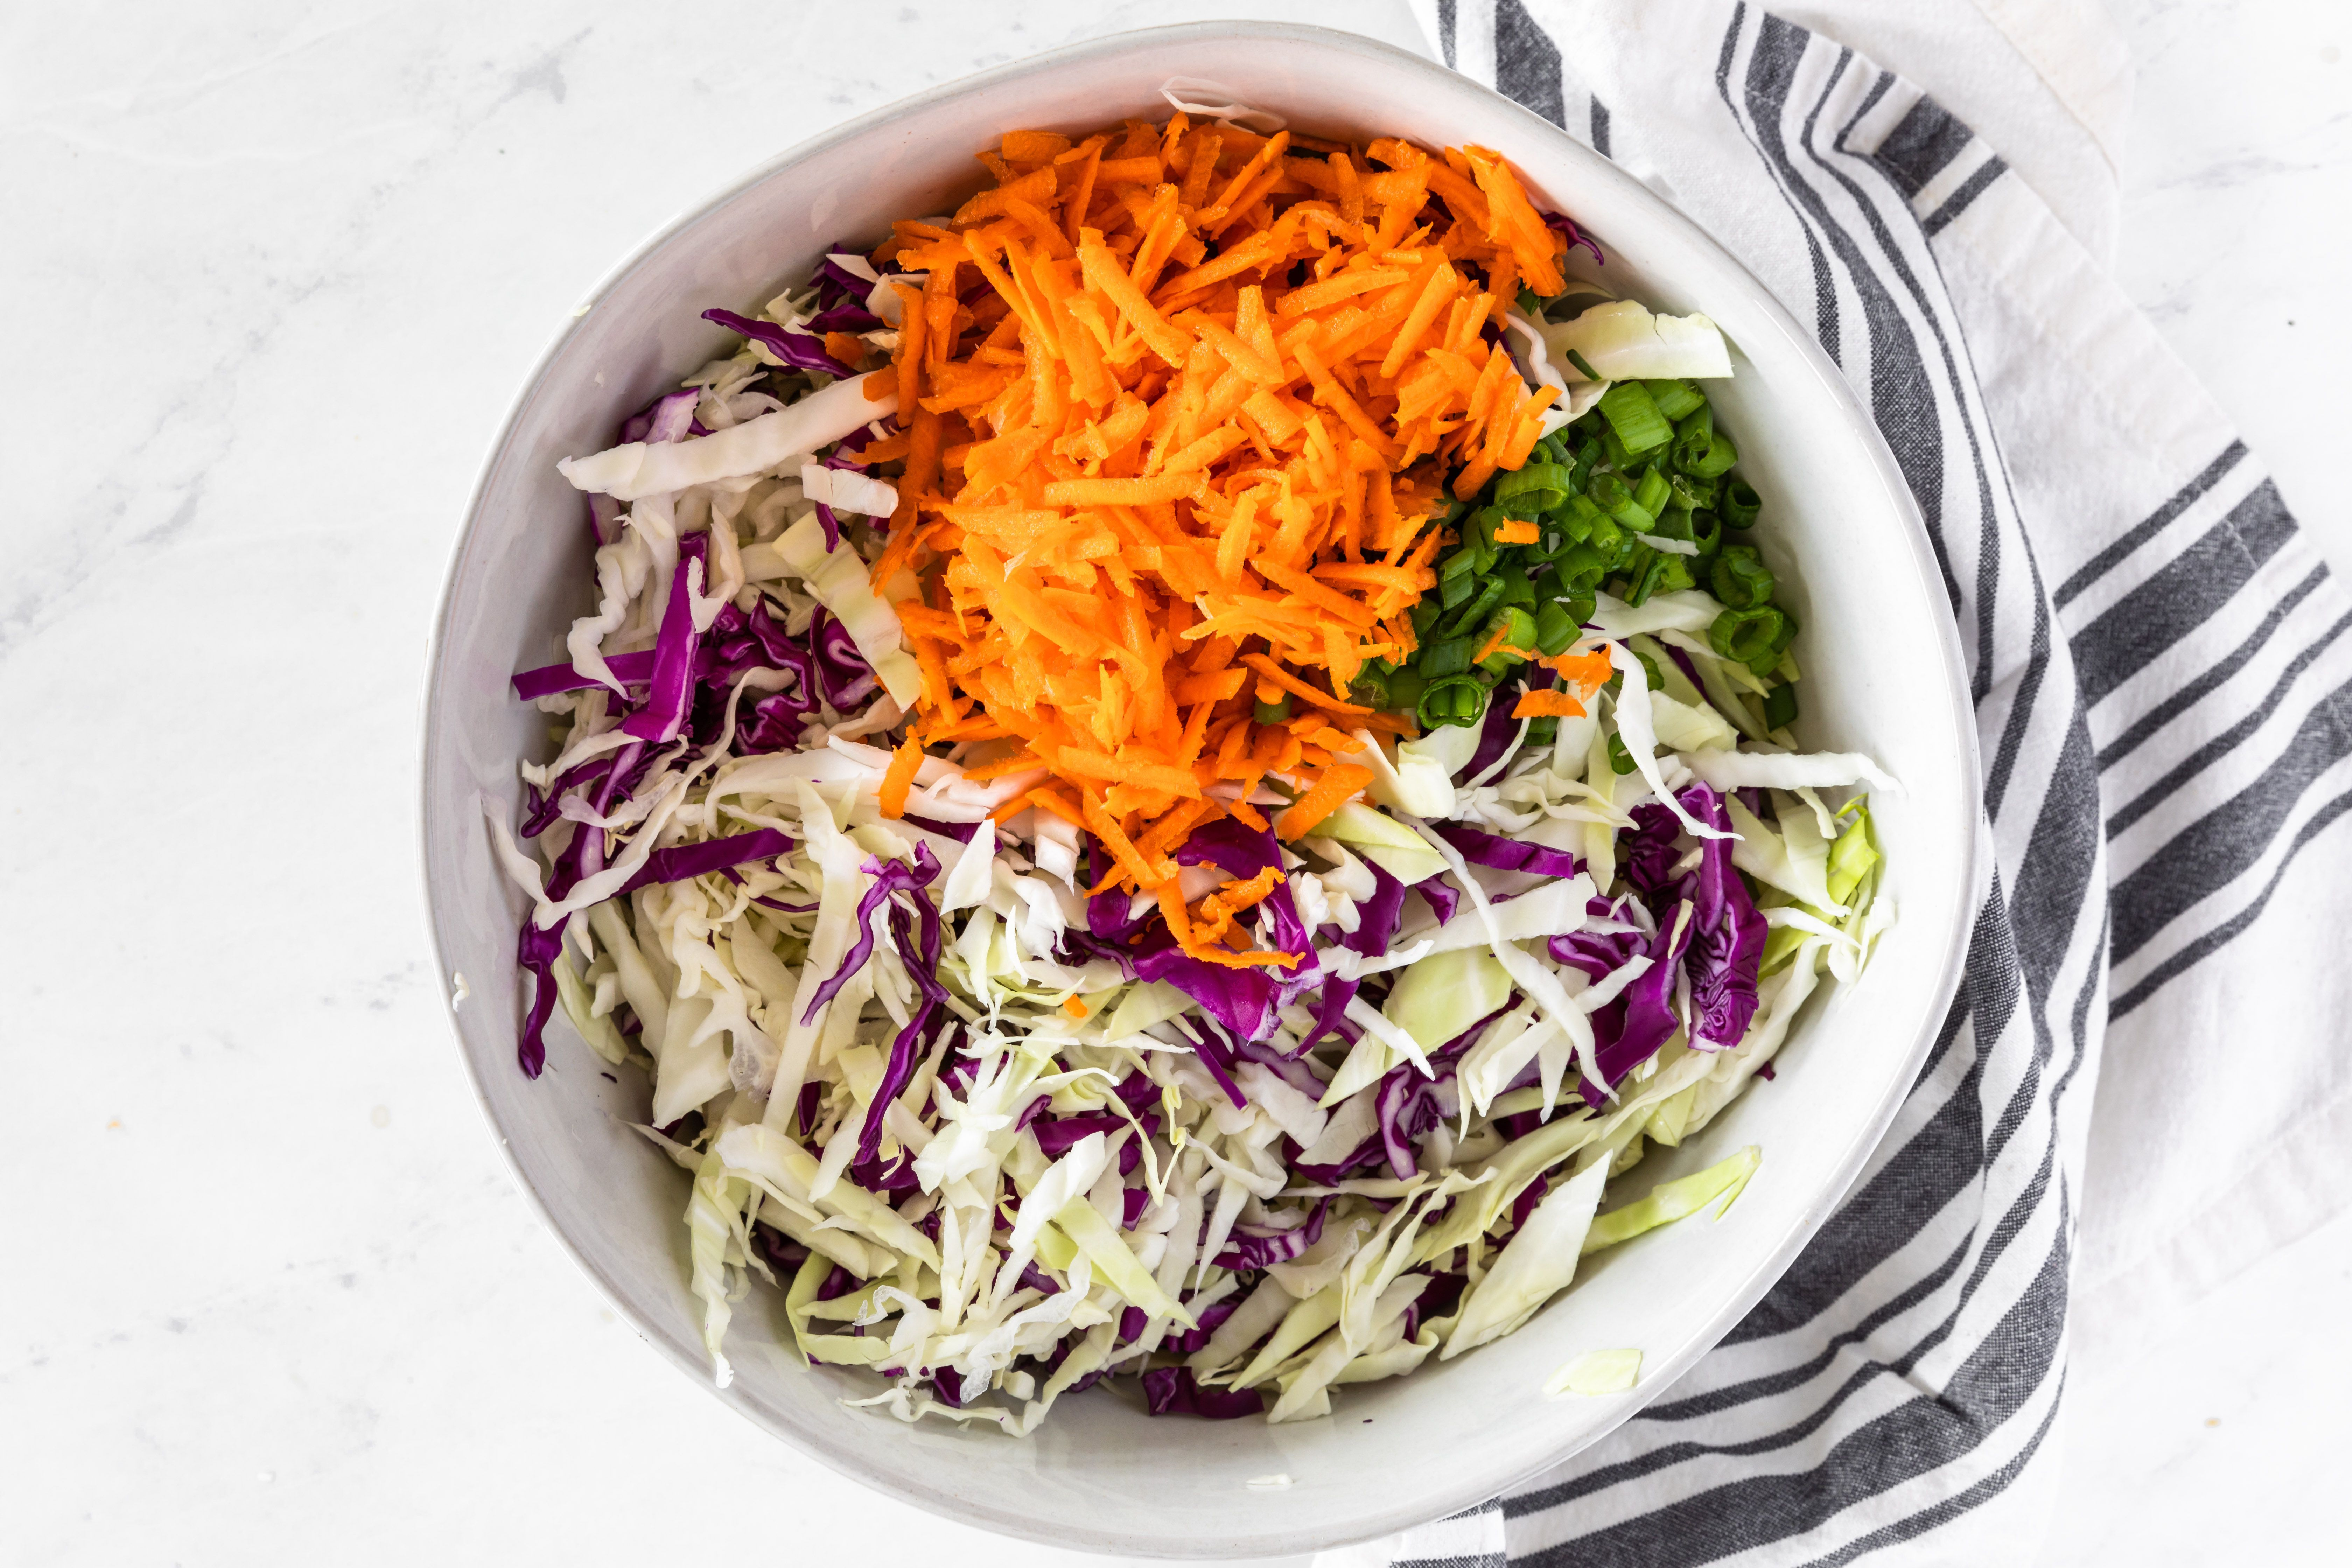 Mix carrots and green onions with the cabbage